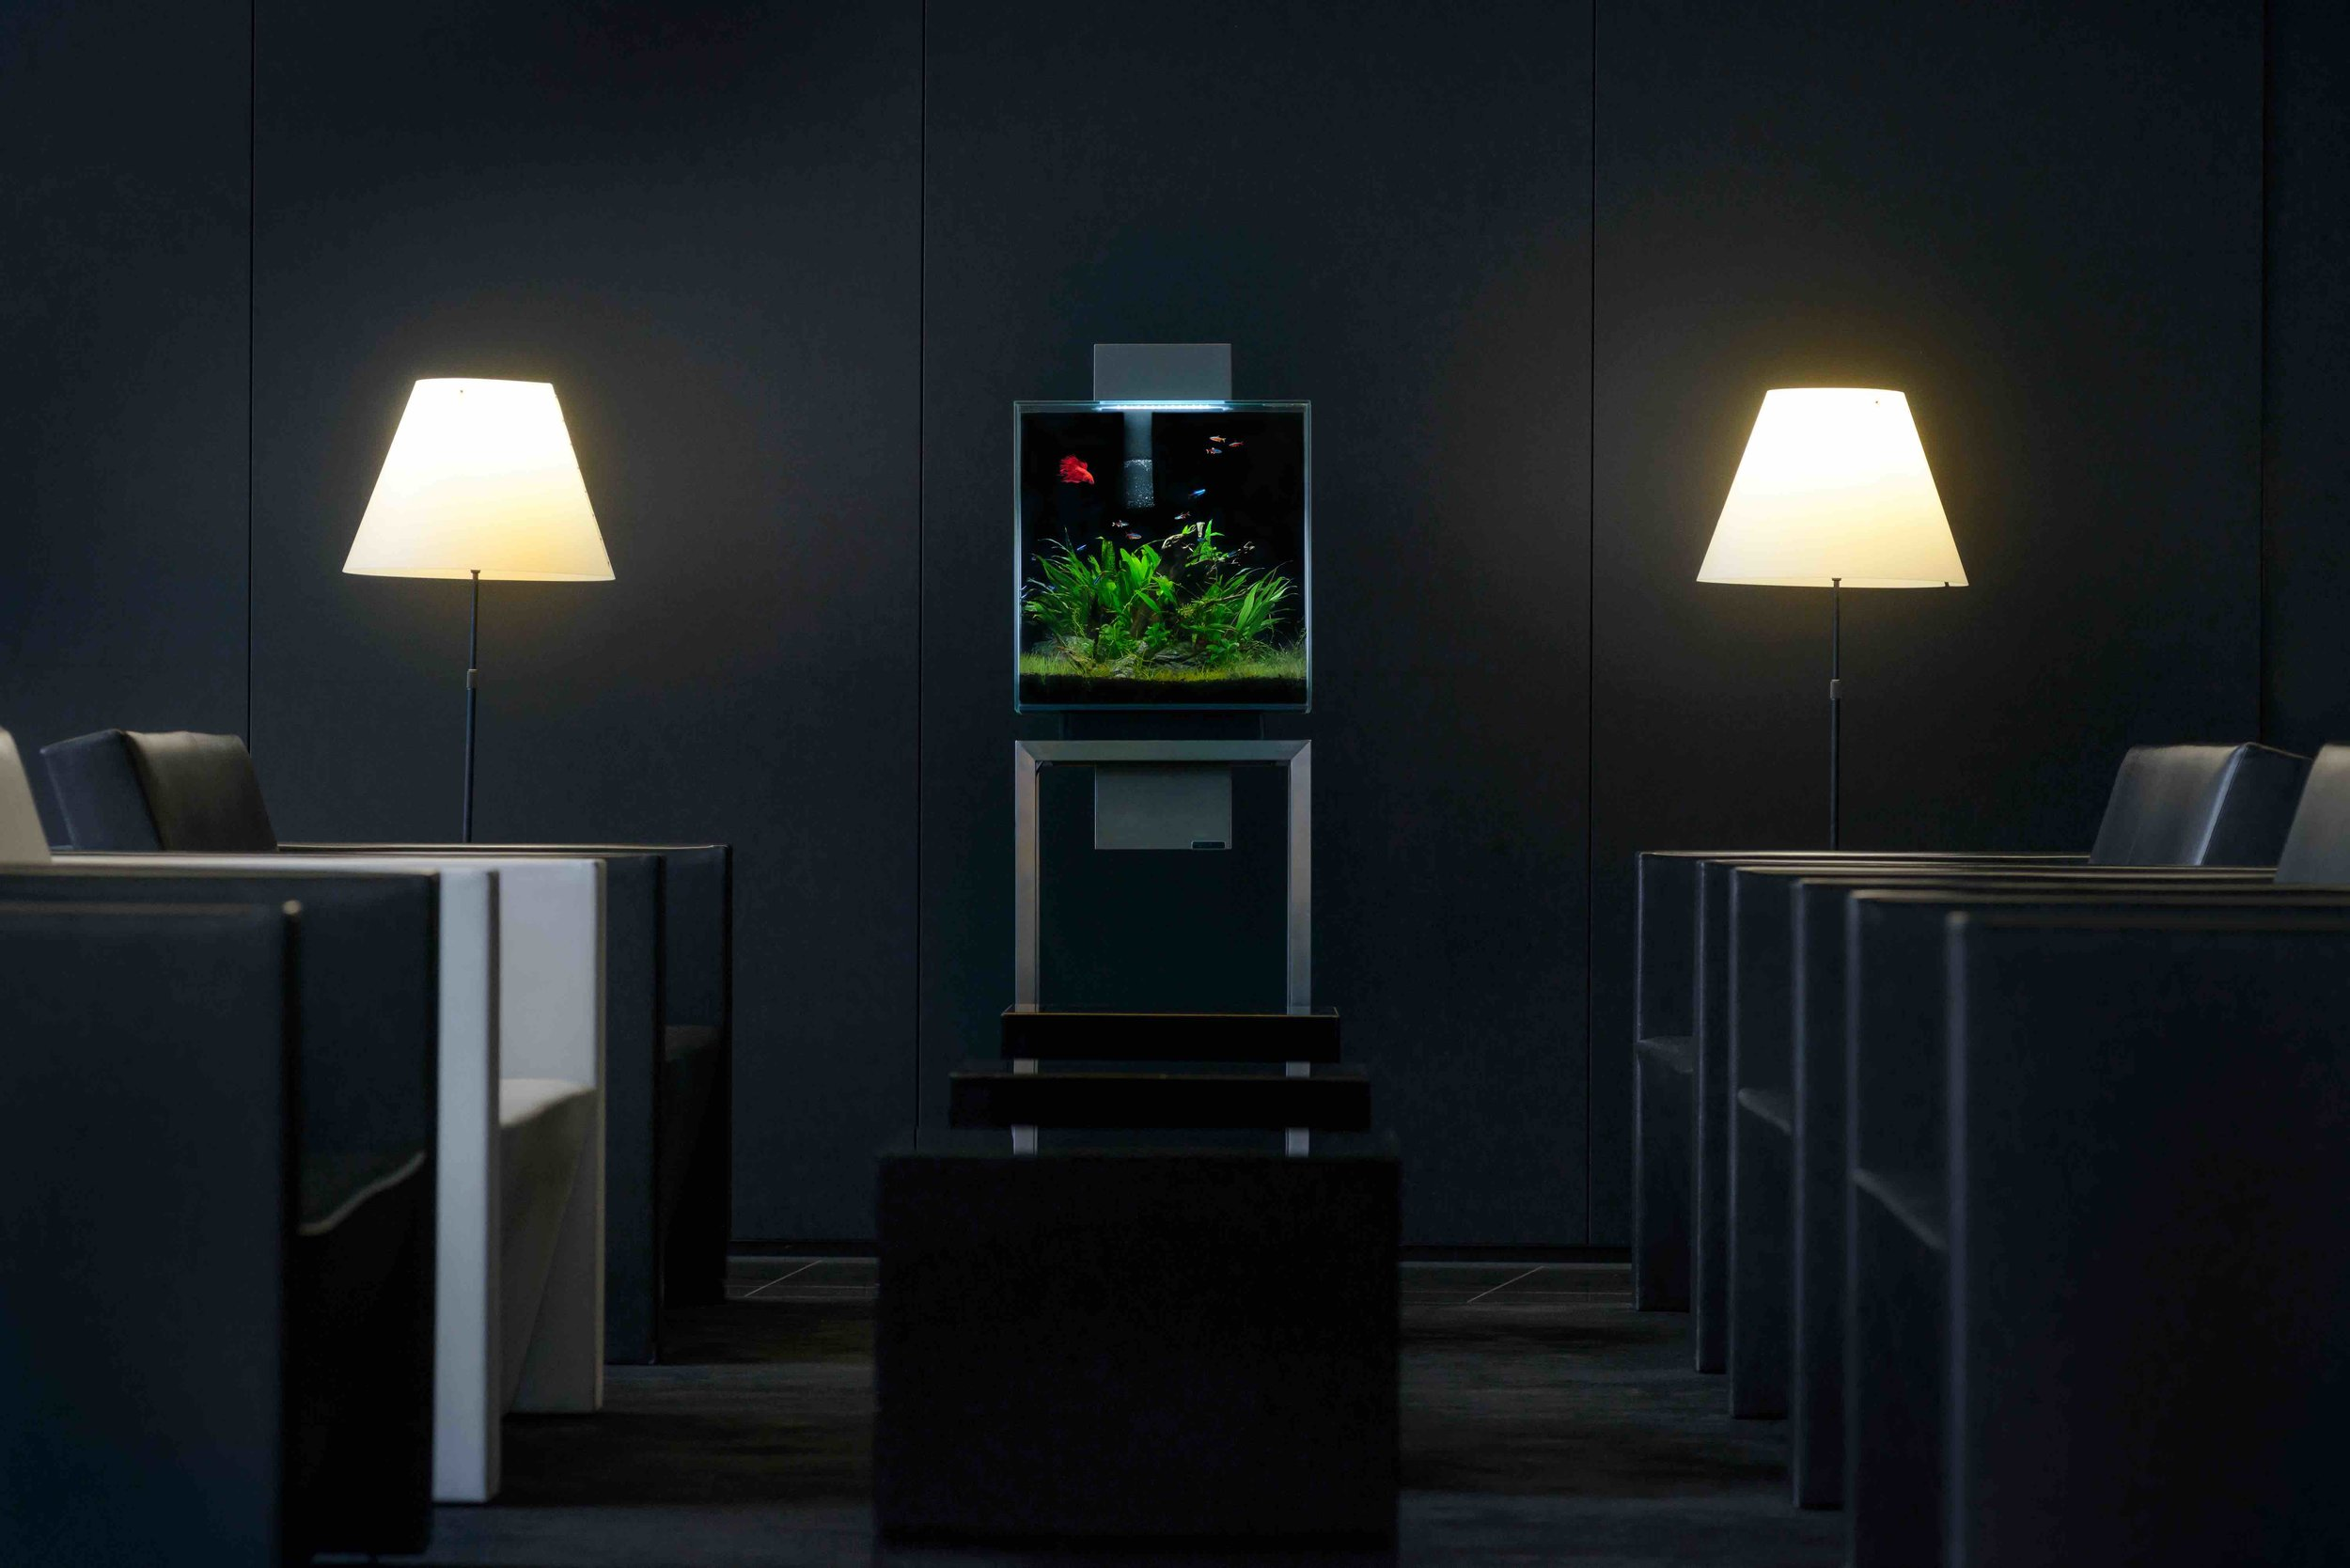 Aquarium Livecube Besprechungszimmer Business Office klein.jpg